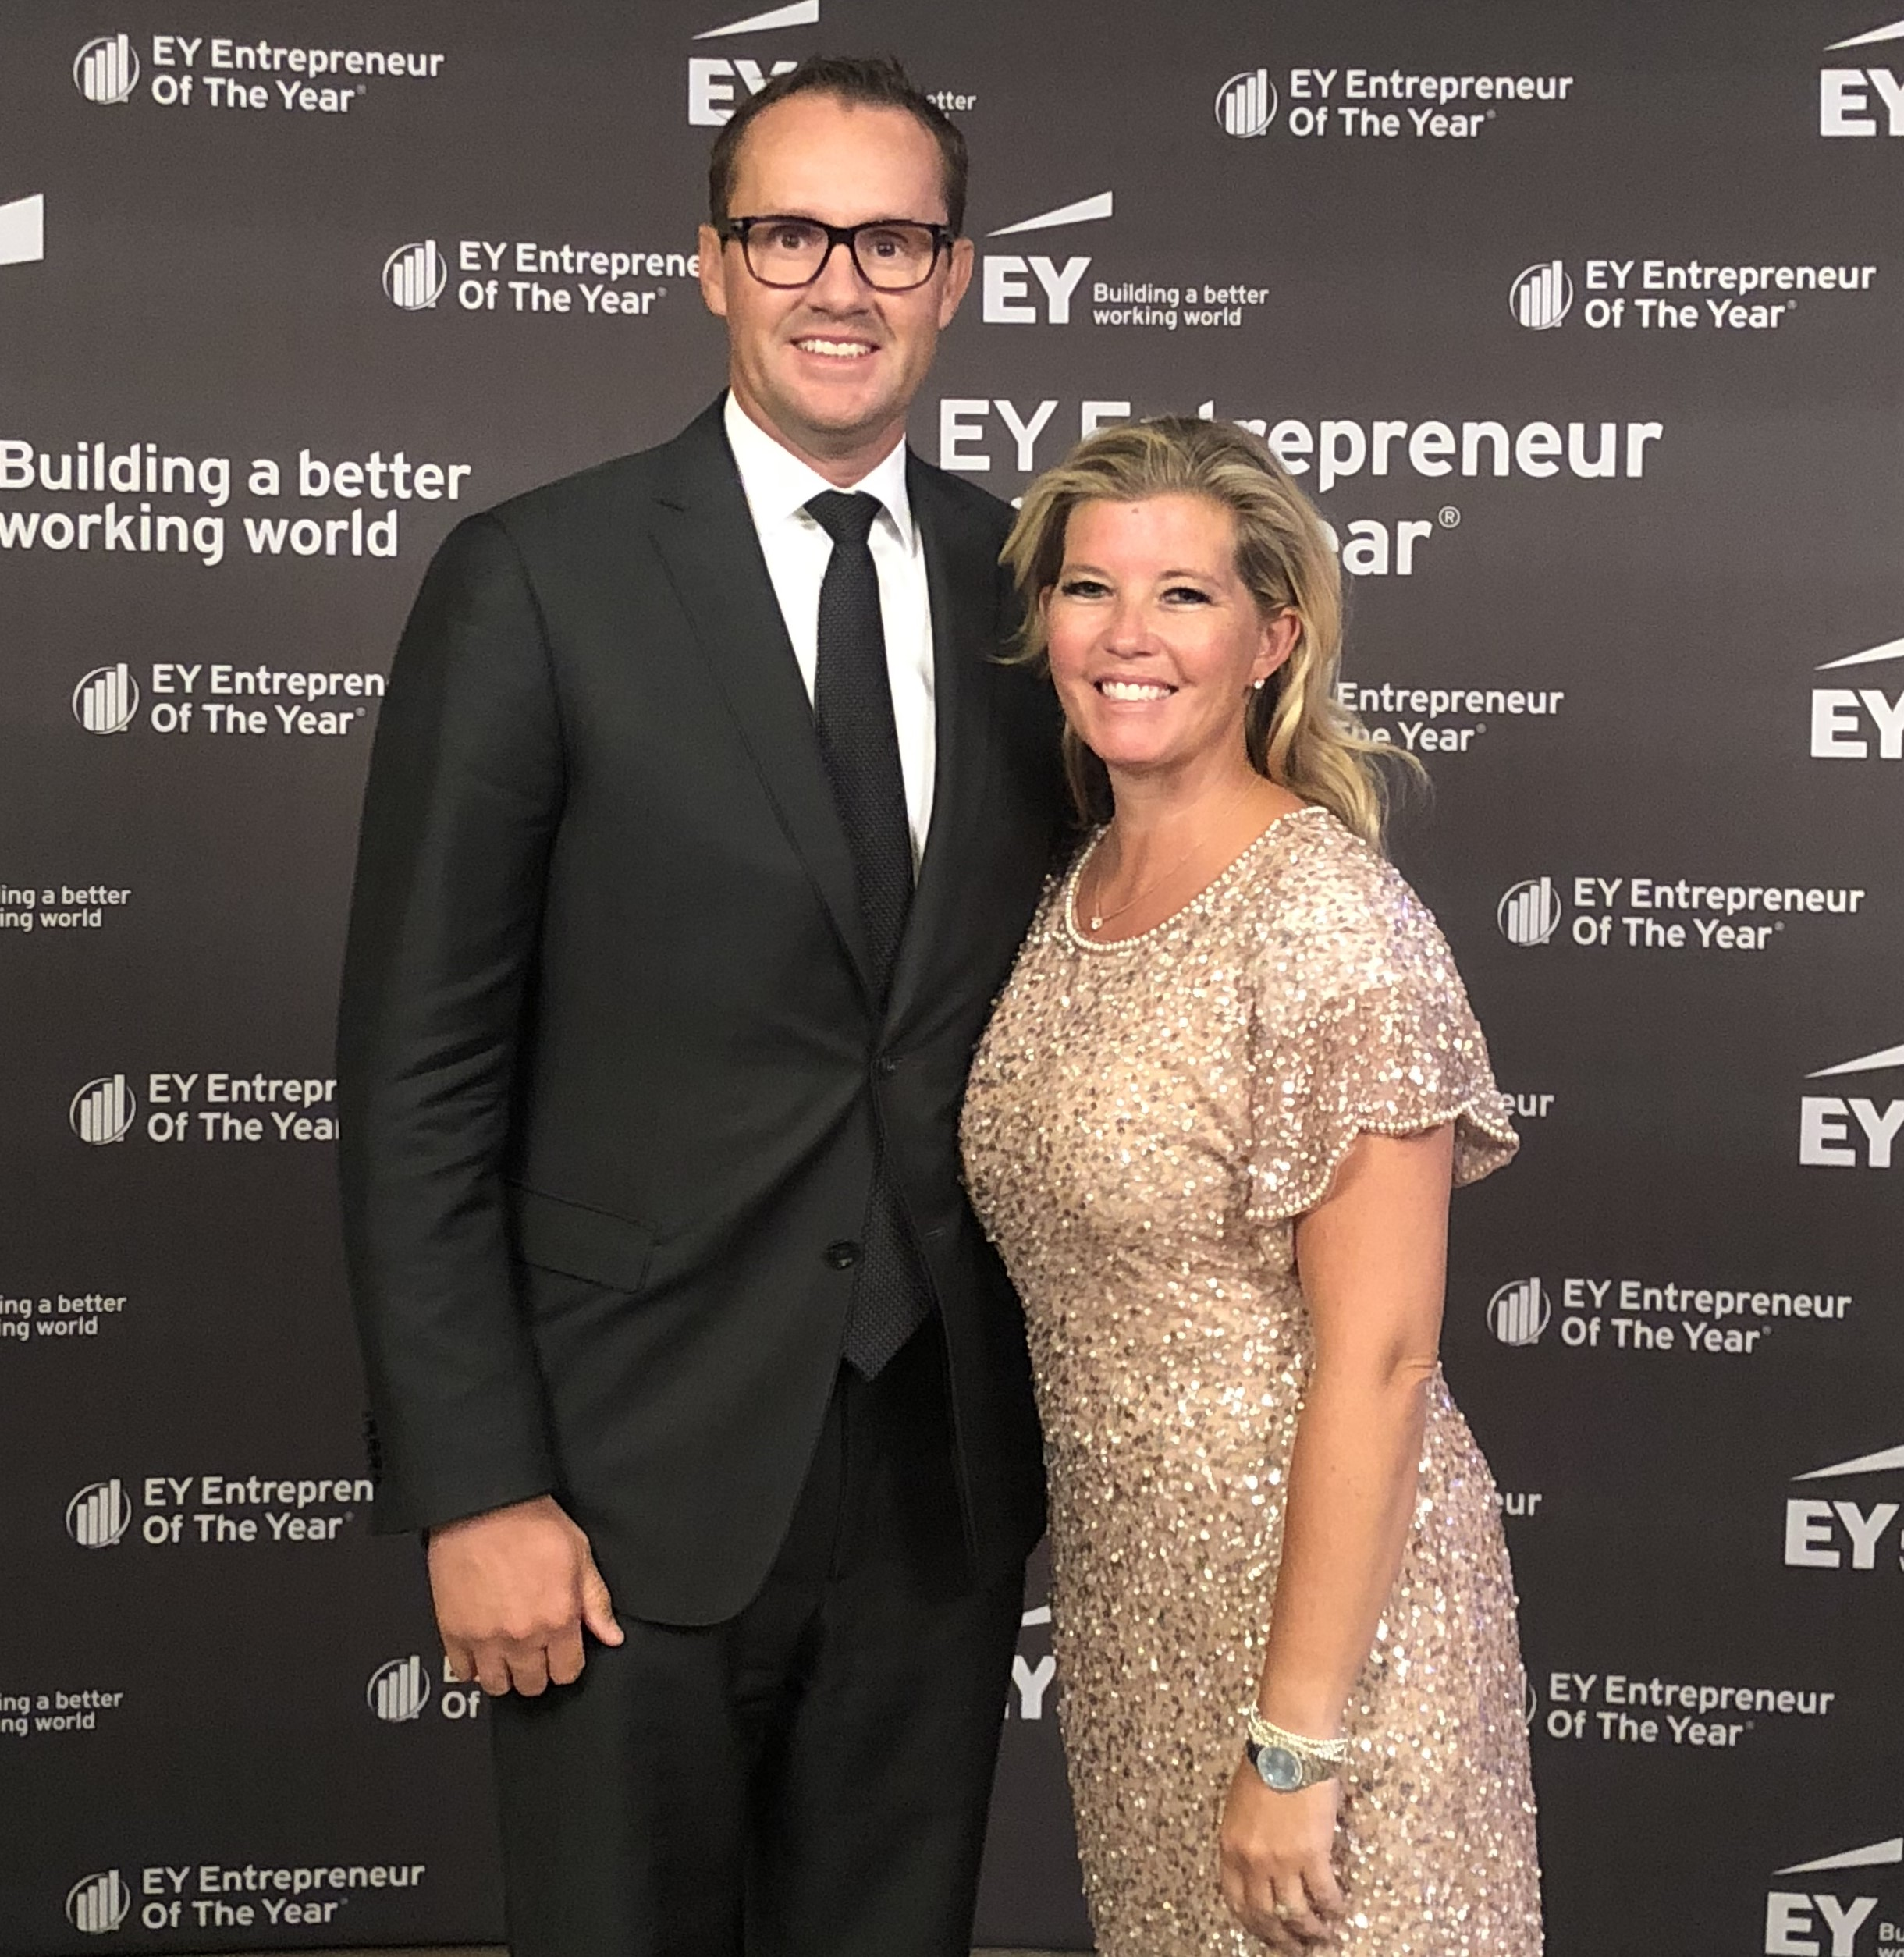 ey-entrepreneur-of-the-year-nationals-cariloha